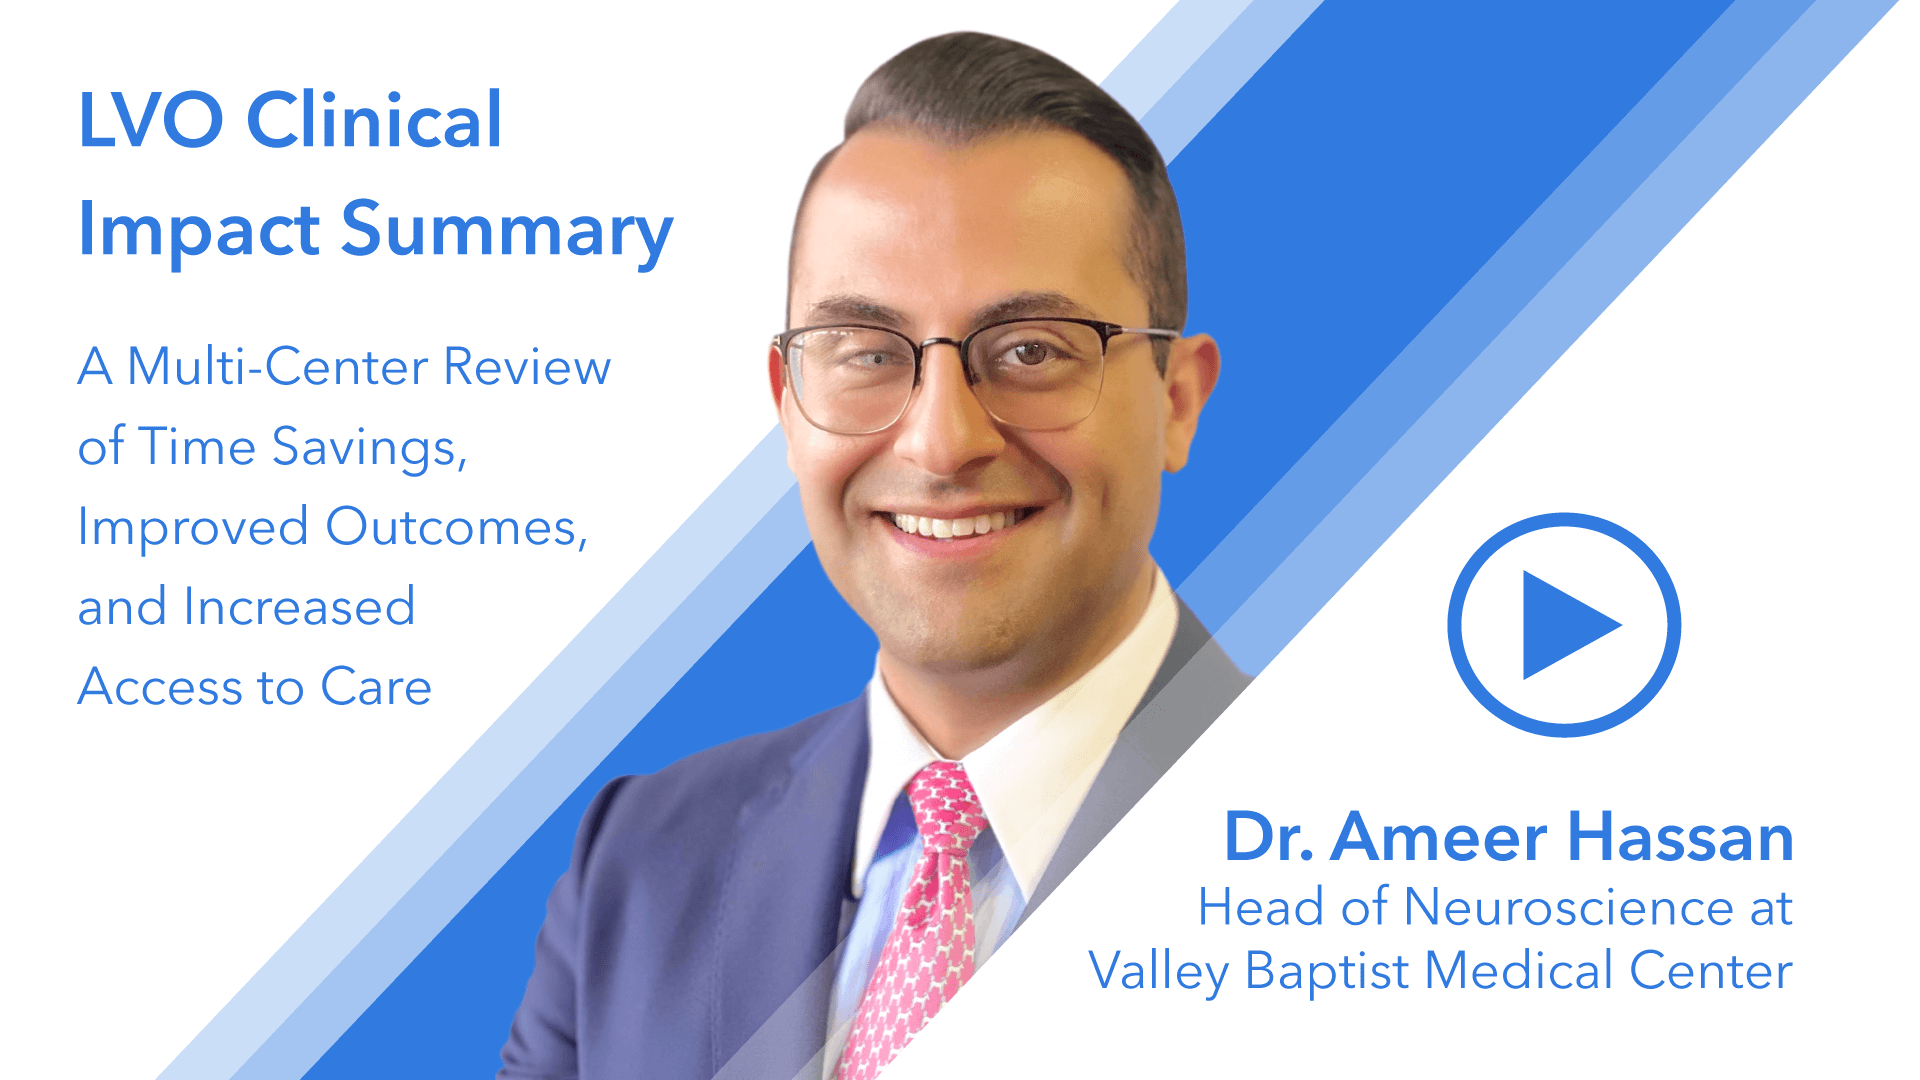 LVO Clinical Impact Summary, A Multi-Center Review of Time Savings, Improved Outcomes, and Increased Access to Care. Presented by Dr. Ameer Hassan, Head of Neuroscience at Valley Baptist Medical Center.